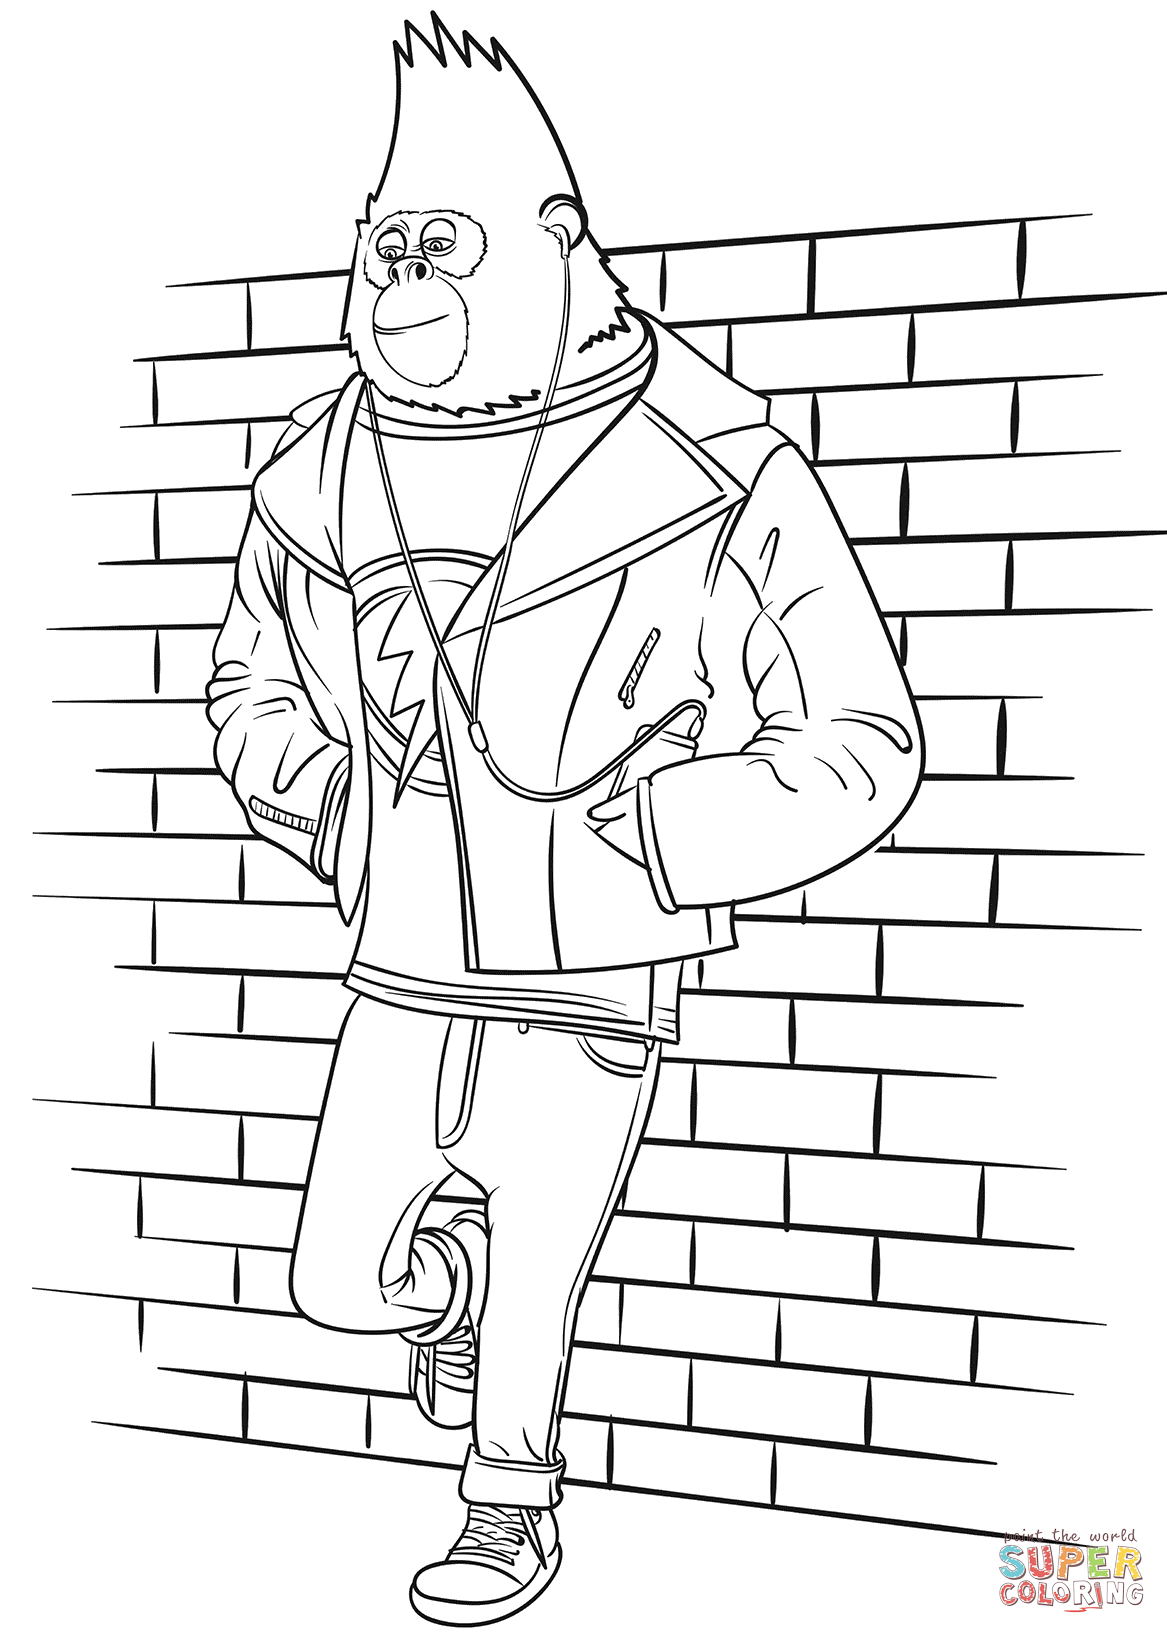 Johnny From Sing Movie Coloring Page